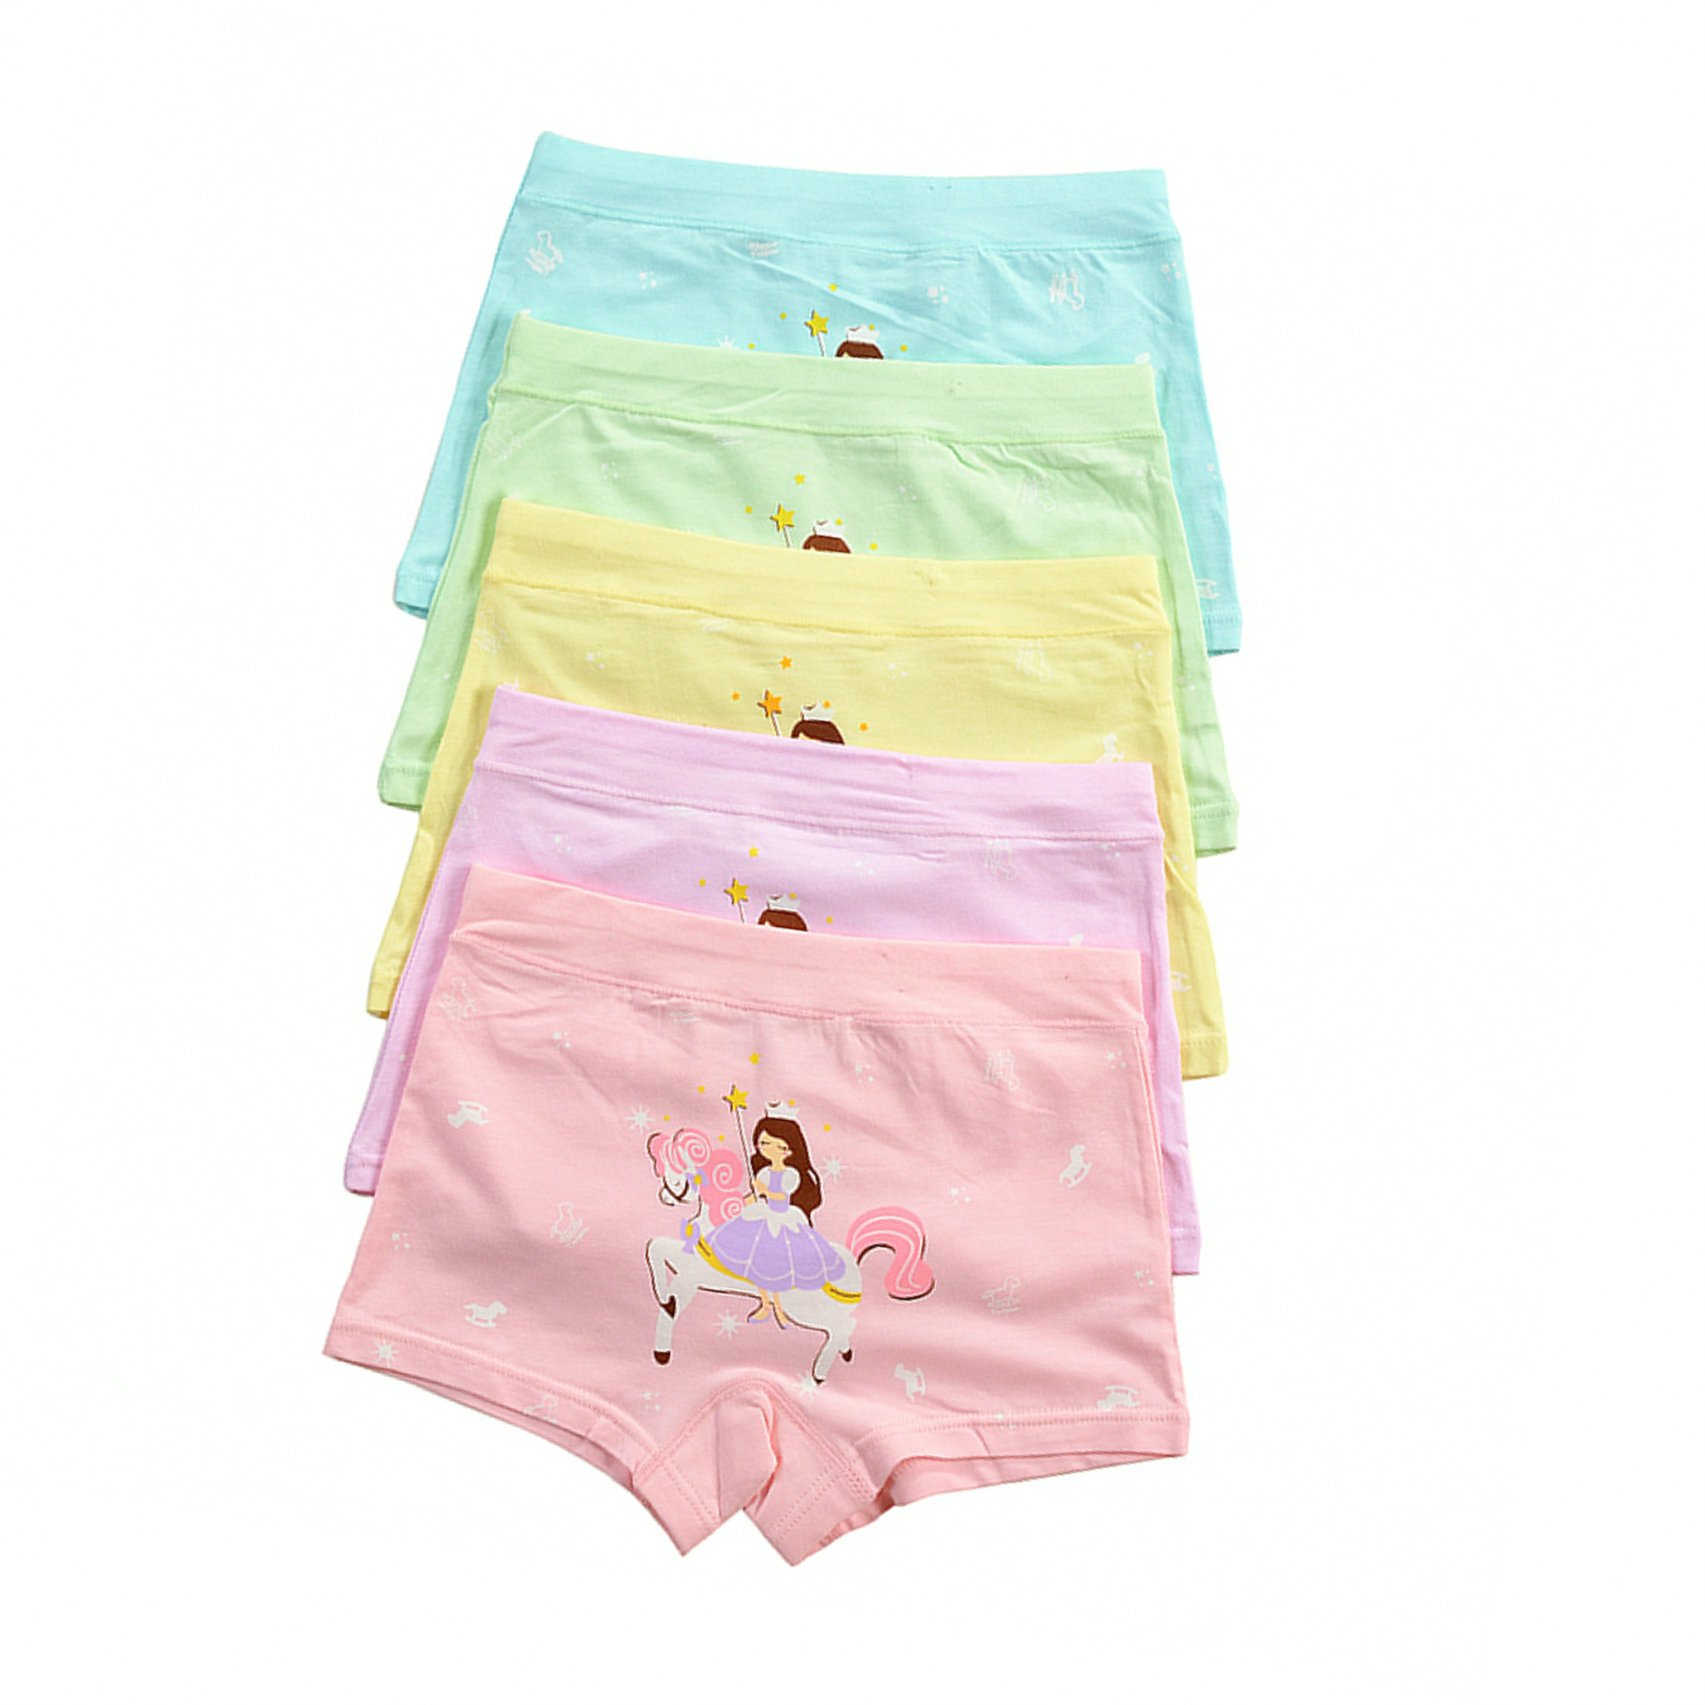 BABYHYY Little Girls Underwear Toddler Hipster Boyshort Kids Briefs Cotton Panties 5 Pack XL(5-7 Years)